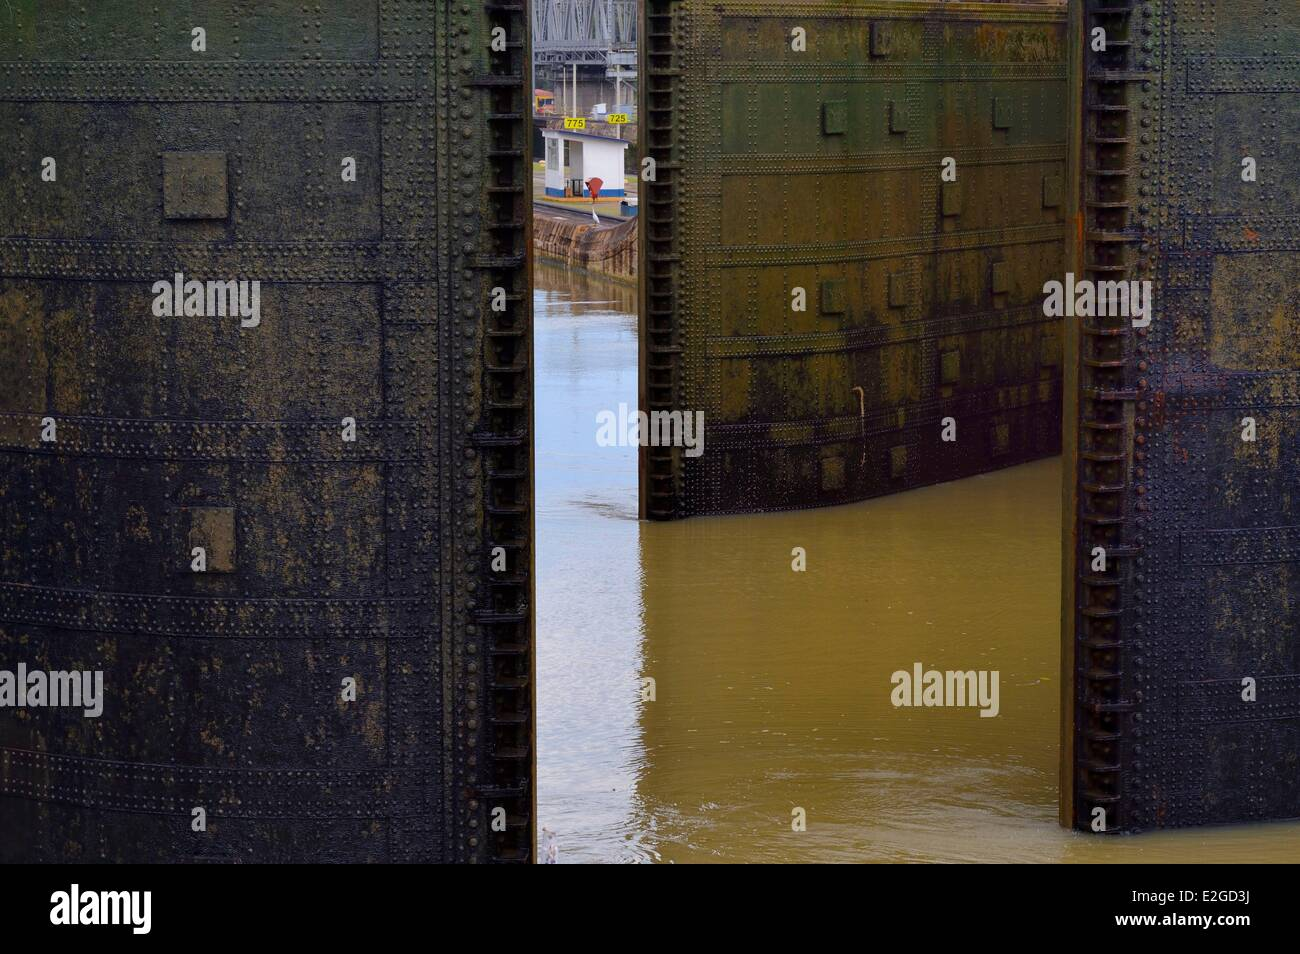 Panama Panama Canal Miraflores locks lock gates at both ends of upper chamber are doubled for safety - Stock Image